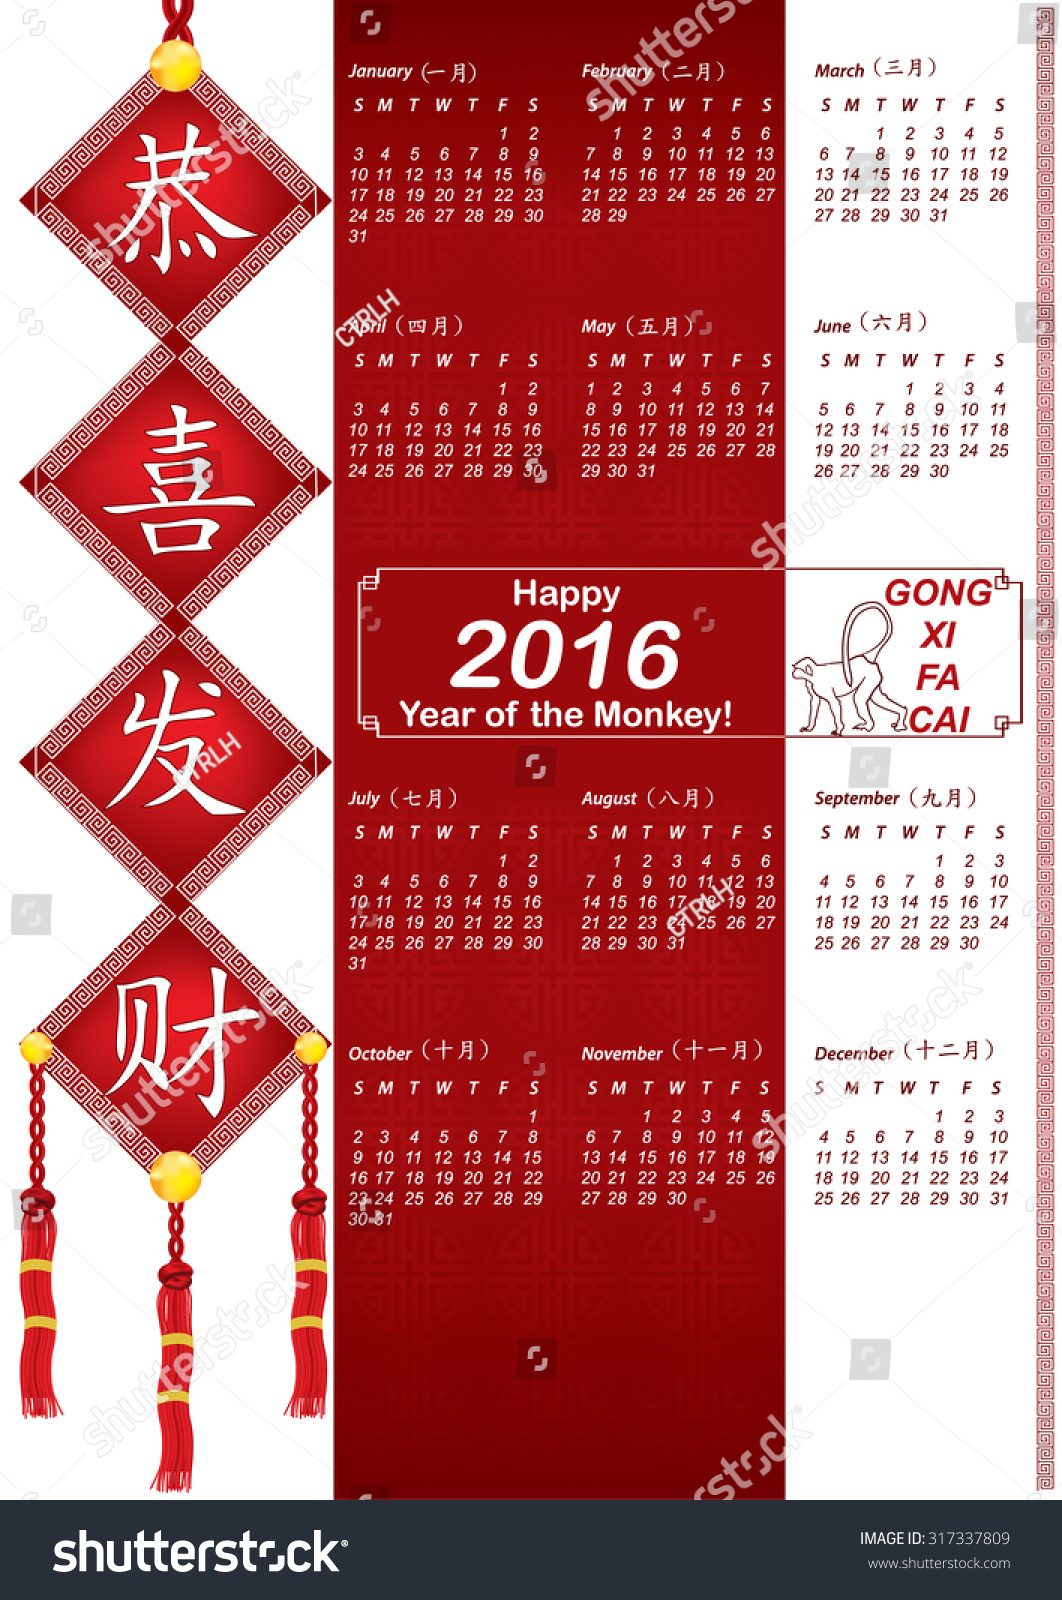 calendar for the chinese new year 2016 year of the monkey chinese text - Chinese New Year 2016 Calendar